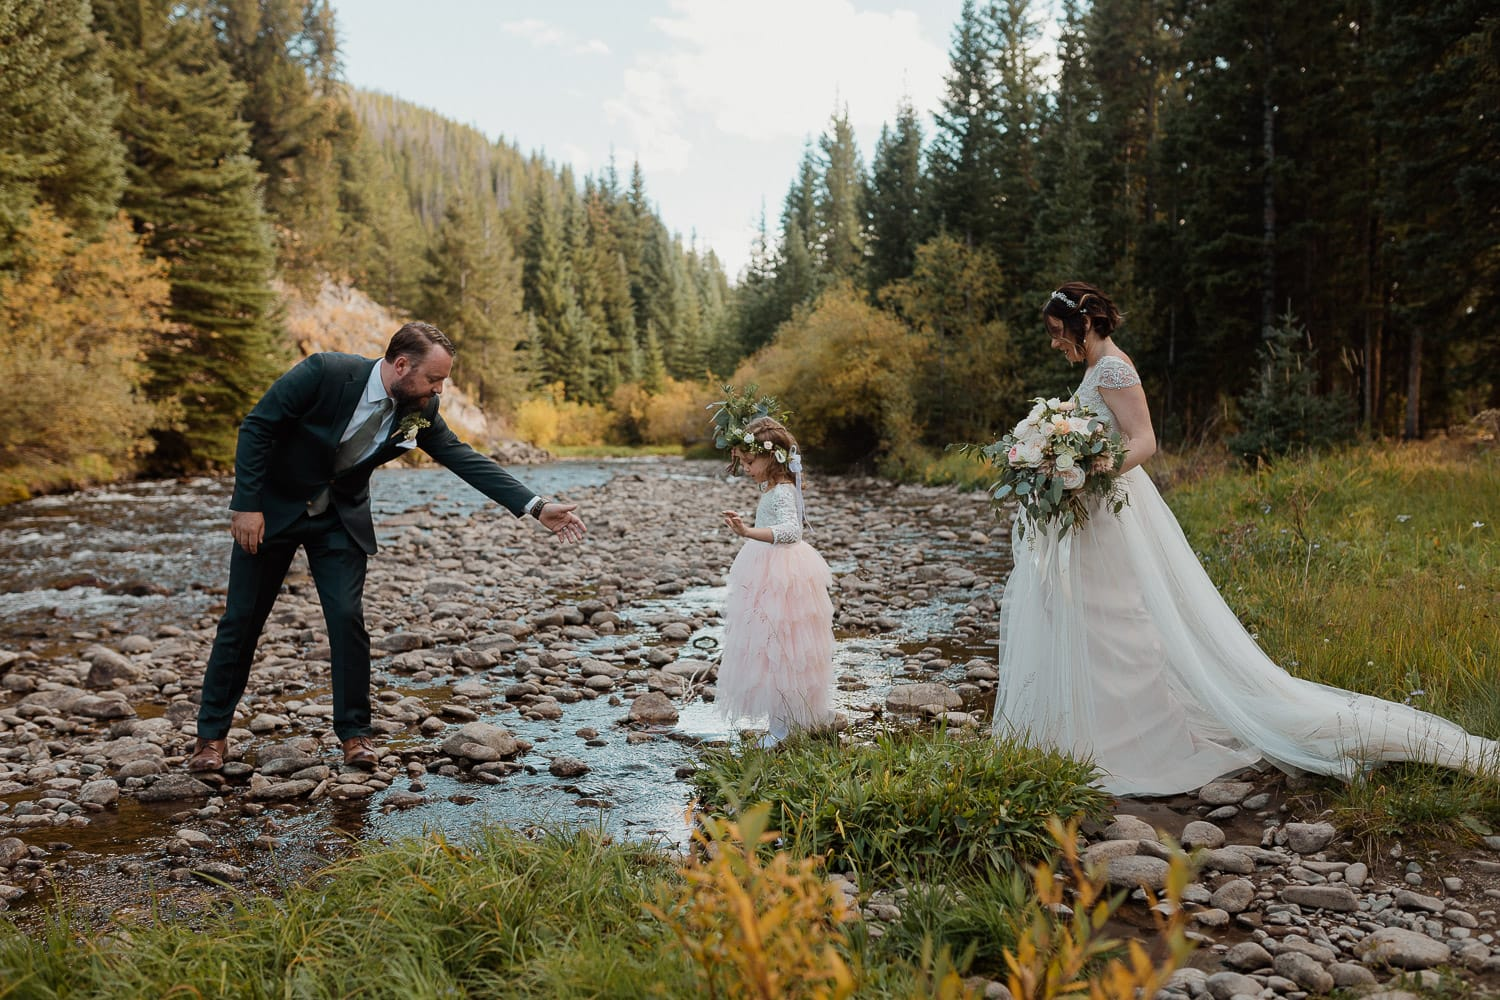 family crossing creek in forest on wedding day